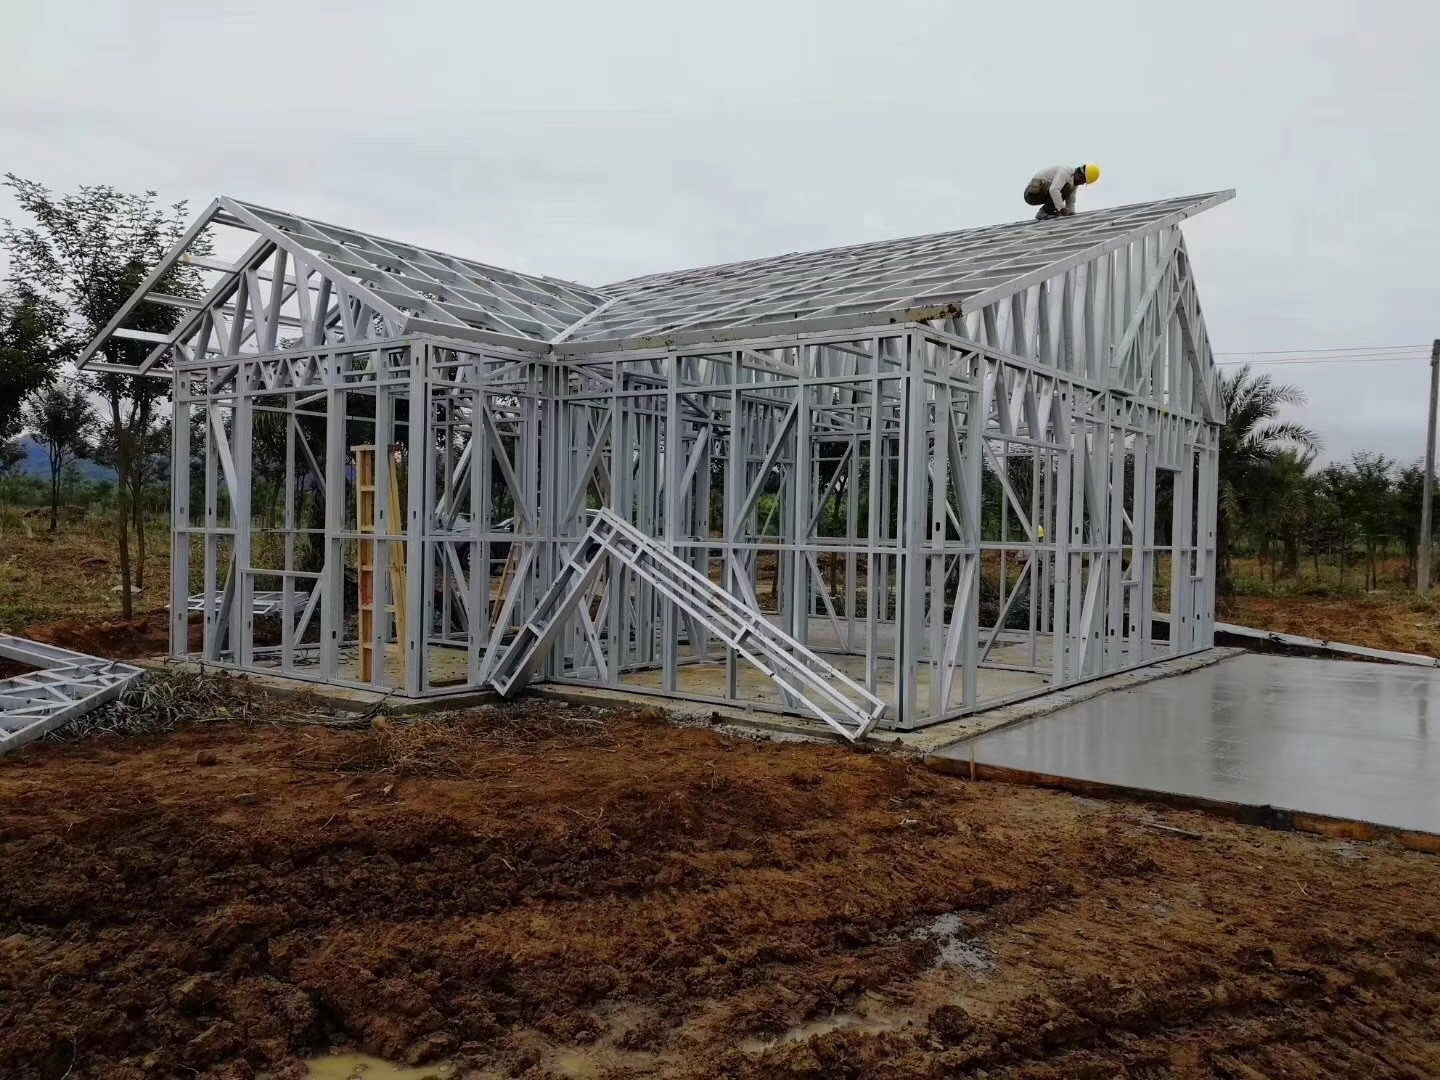 Lightweight steel guage structure/ framing materials